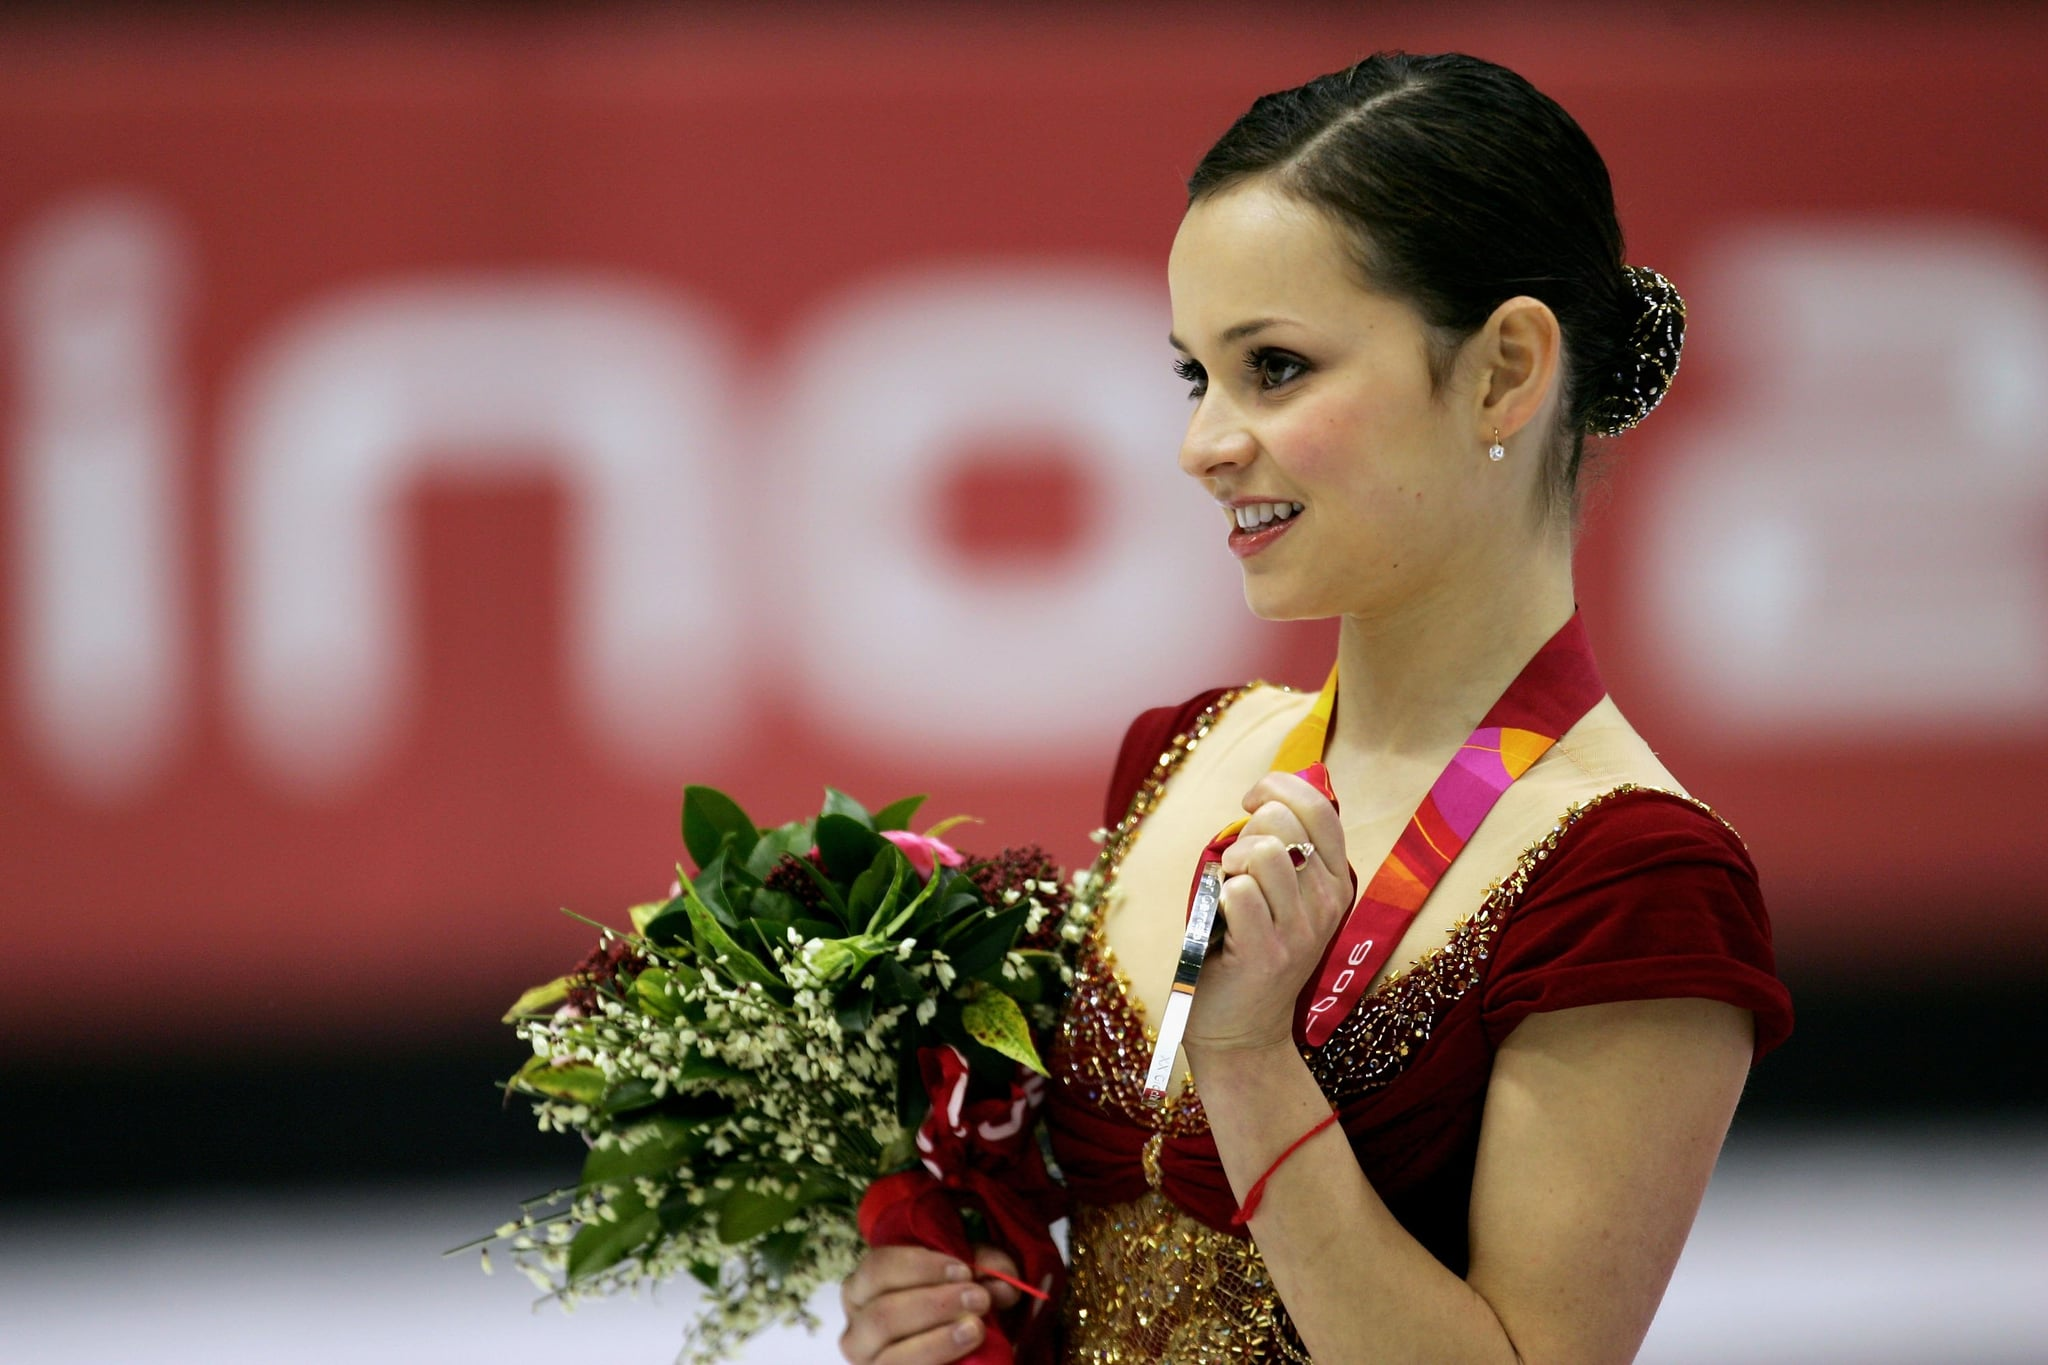 TURIN, ITALY - FEBRUARY 23:  Sasha Cohen of the United States wins the silver medal in the women's Free Skating program of figure skating during Day 13 of the Turin 2006 Winter Olympic Games on February 23, 2006 at Palavela in Turin, Italy.  (Photo by Robert Laberge/Getty Images)